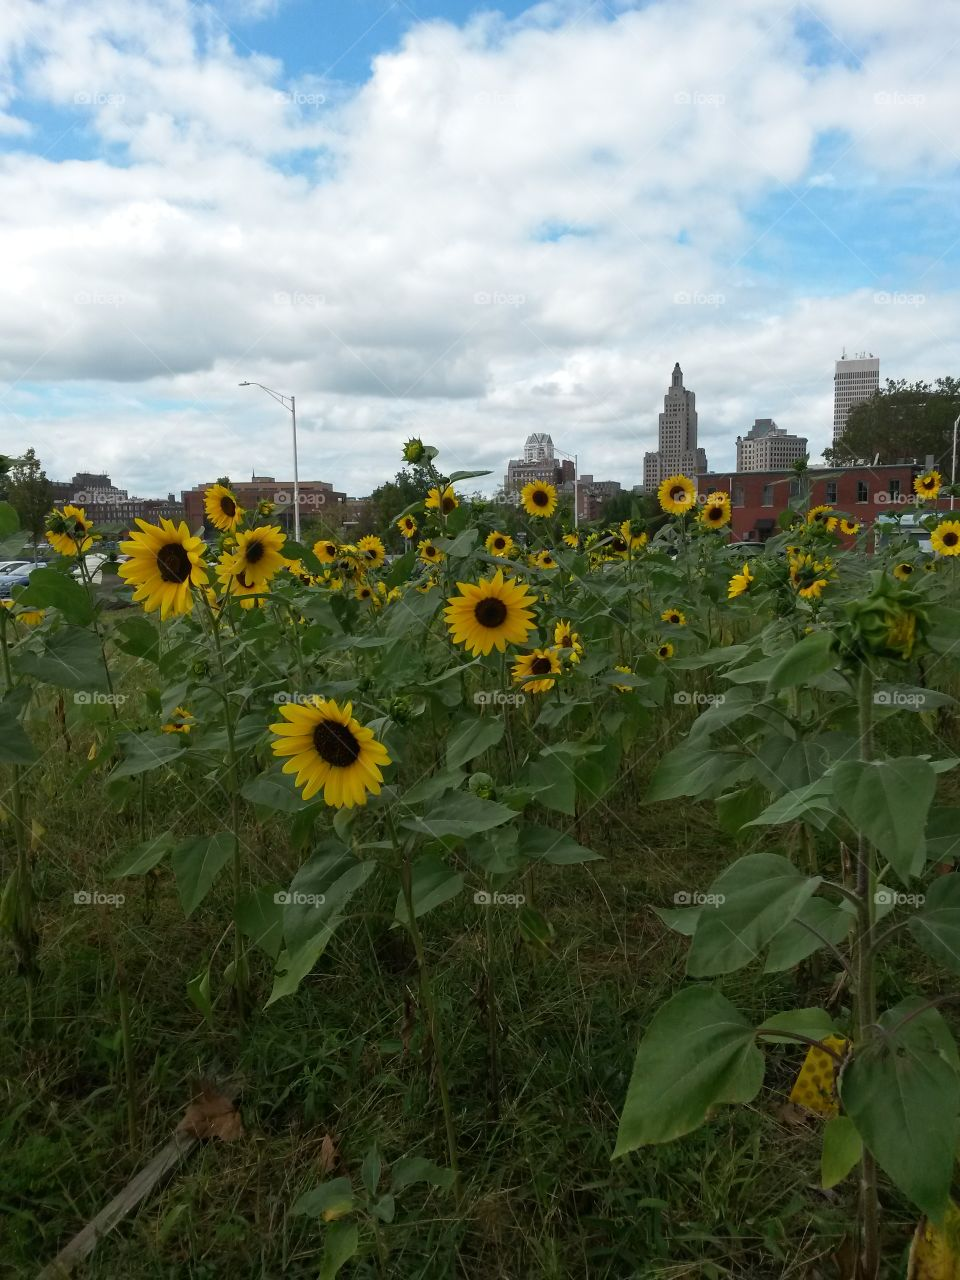 city sunflowers